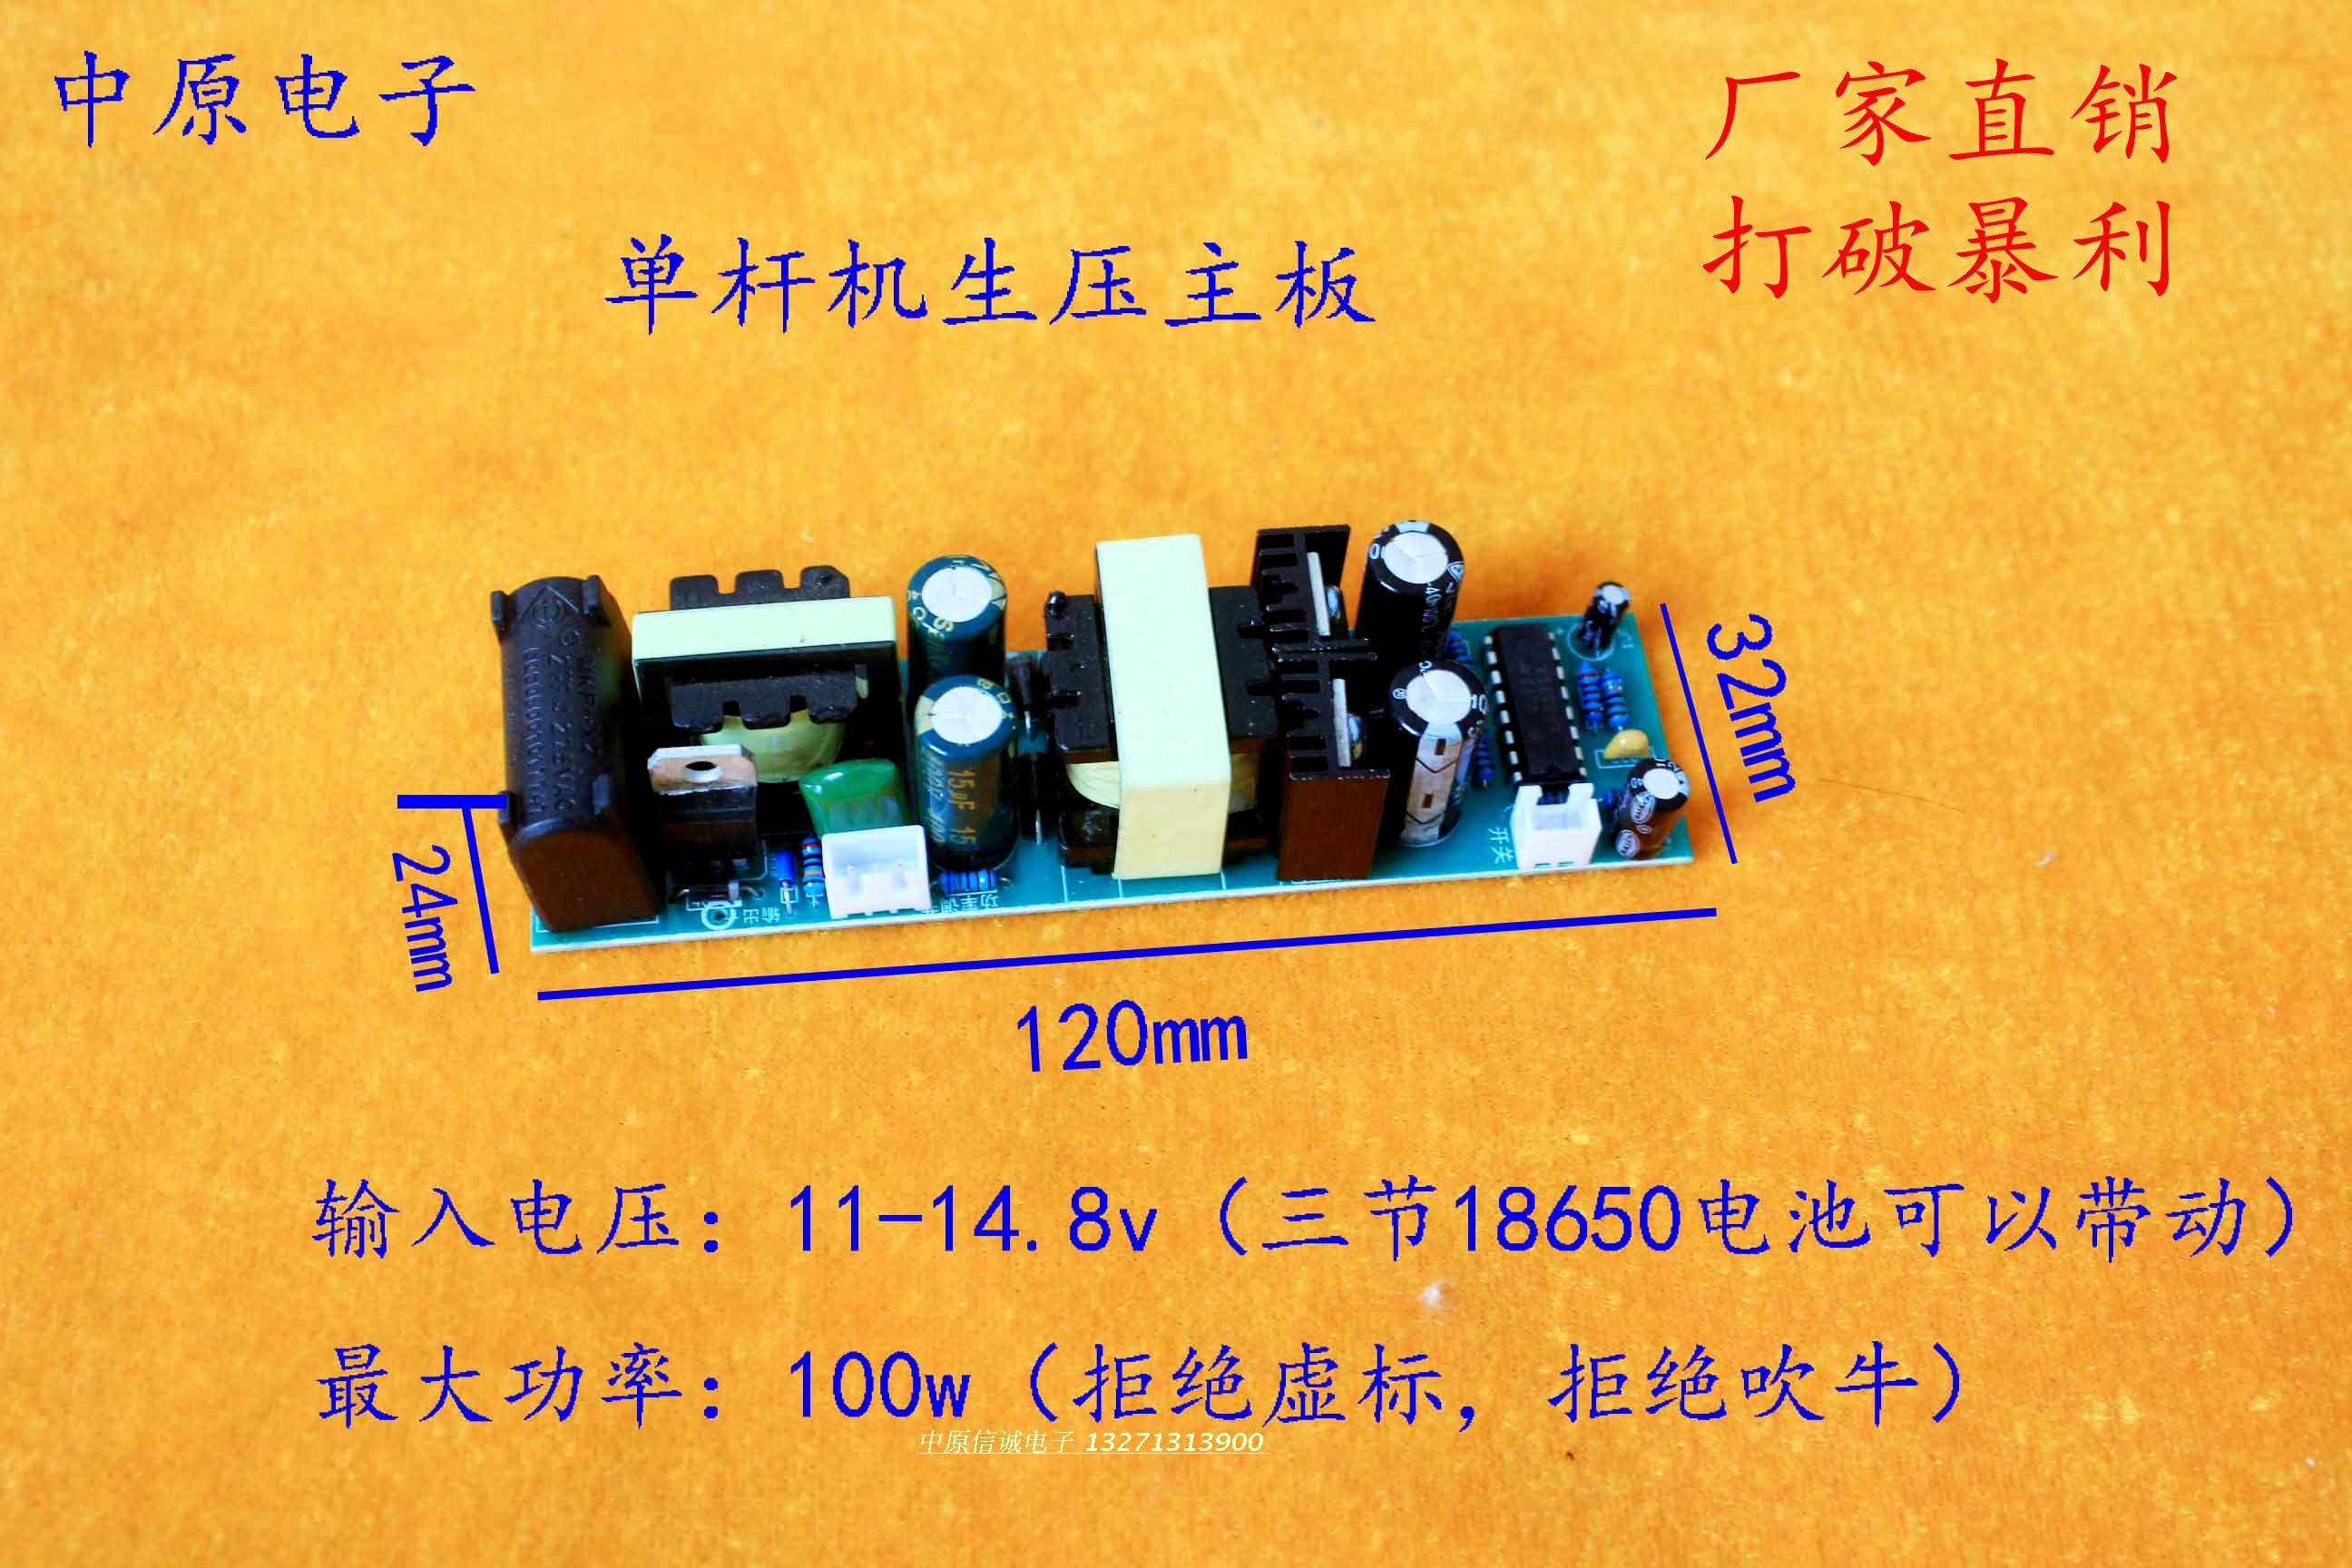 Small micro inverter booster nose diving machine eel loach single rod machine brailing machine motherboard package mail aoshike 10 15v 300w adjustable small inverter board micro boost machine head single land use pole machine